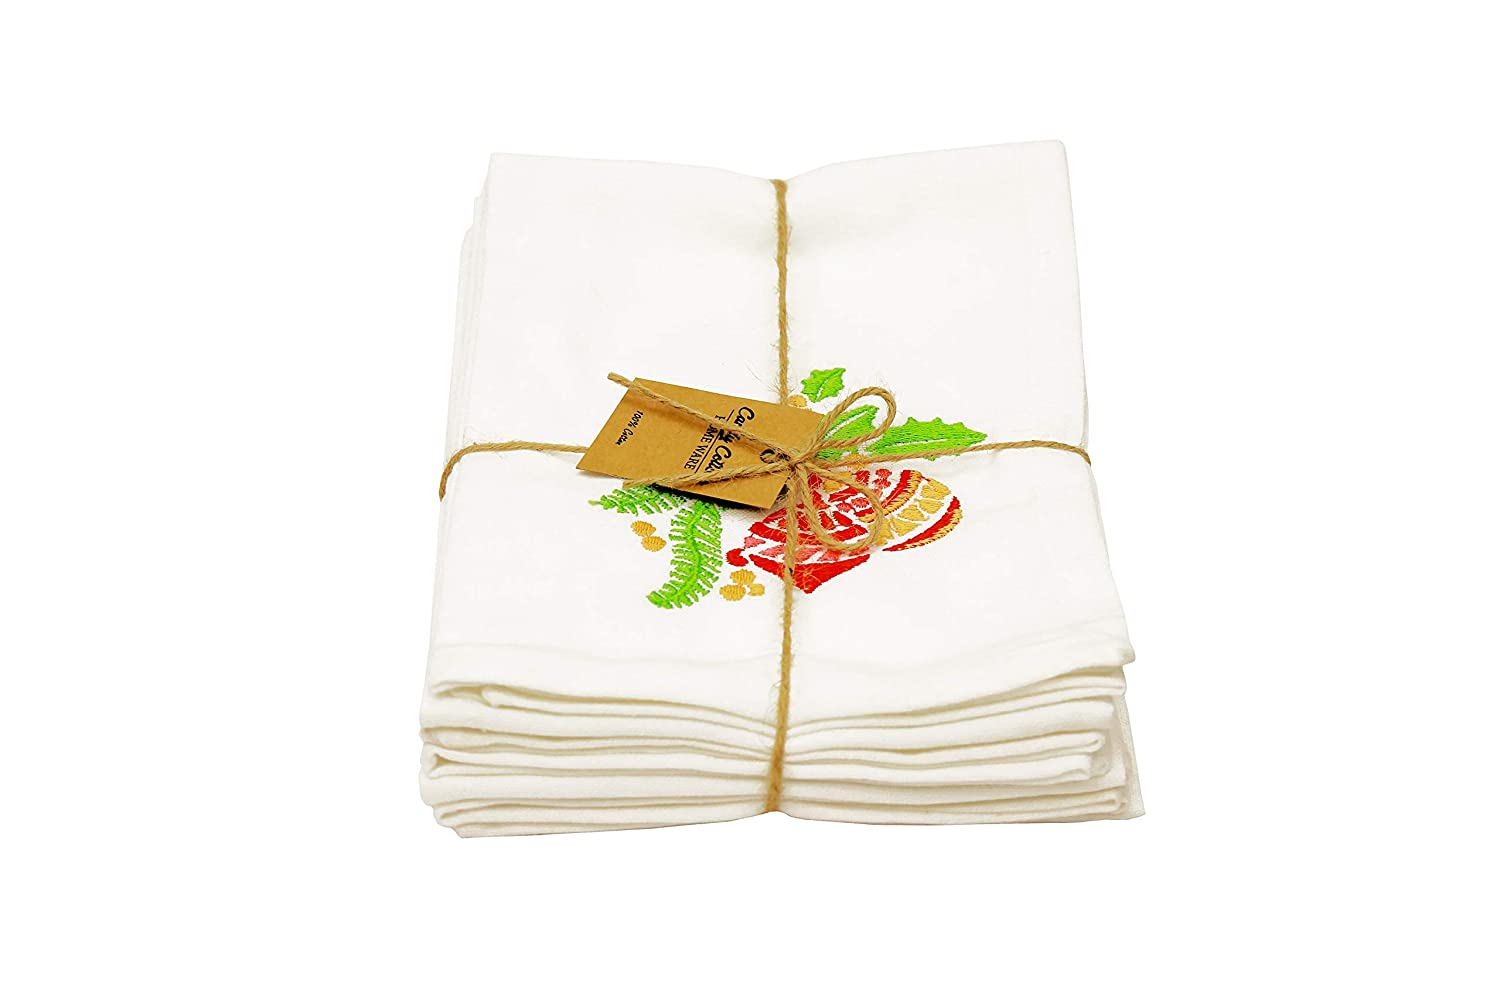 Candy Cottons Kitchen Dish Towels 100/% Cotton Extra Large Tea Towels Pack of 3 Kitchen Towels of Size 18 X 28 Inches for Everyday Kitchen Cooking Orchid Impex Pineapple Printed